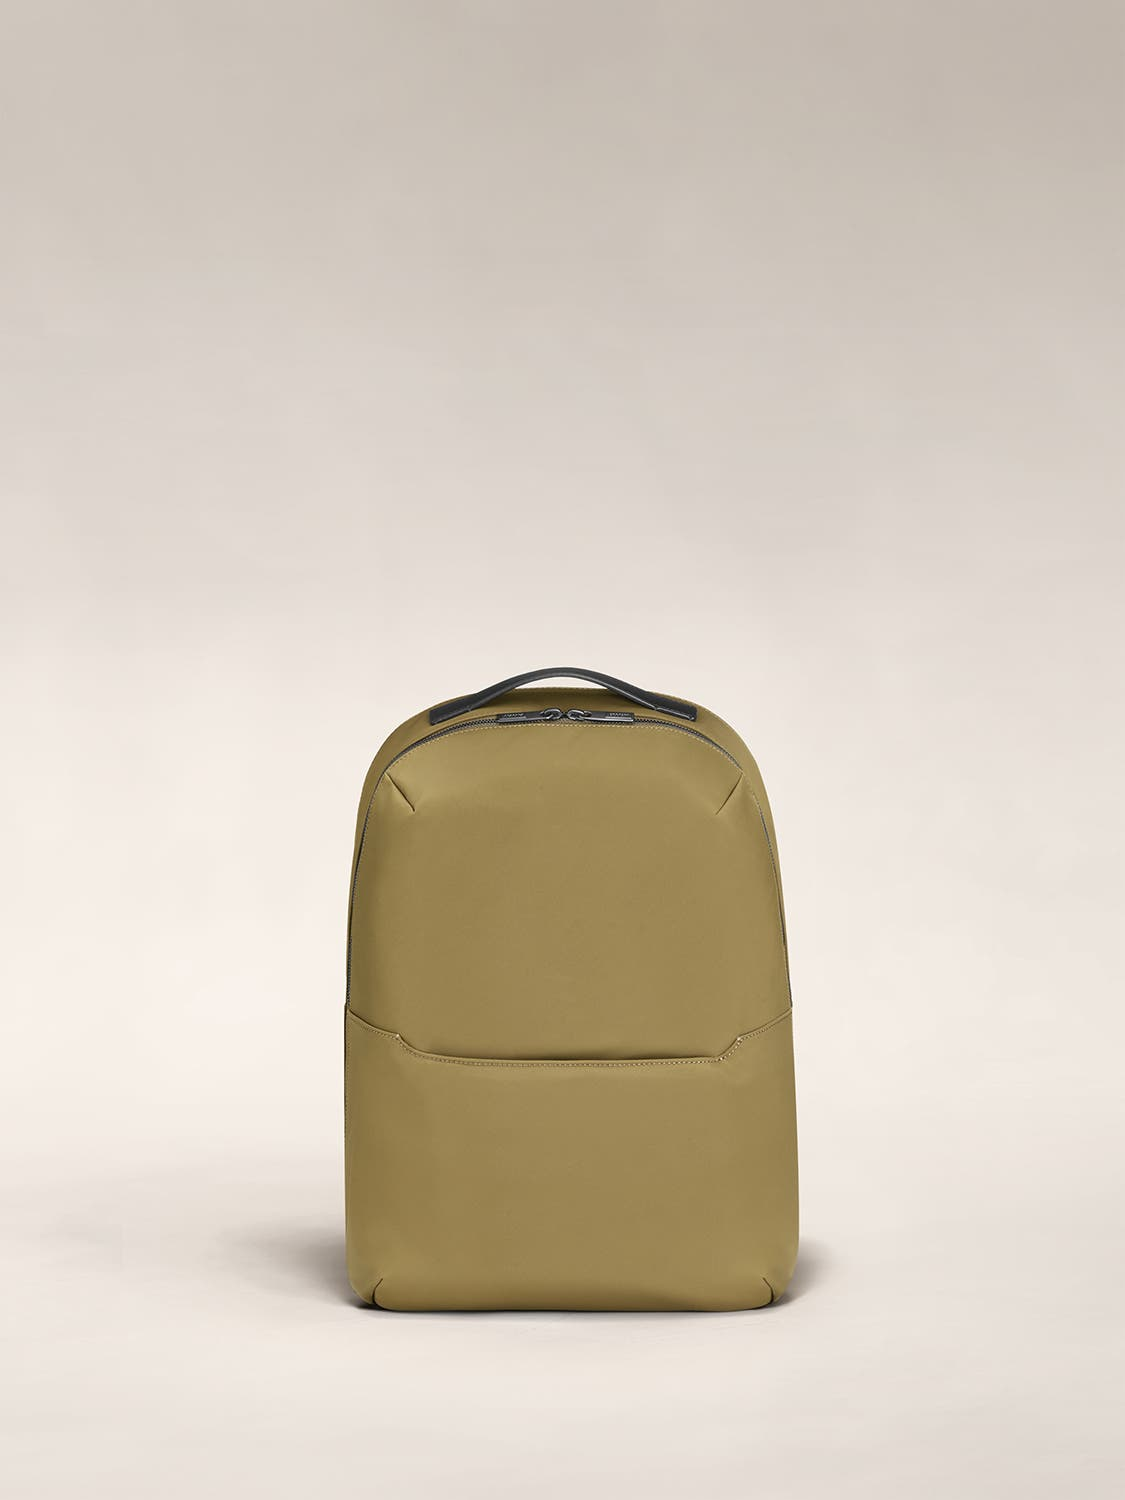 Front view of a moss green backpack.